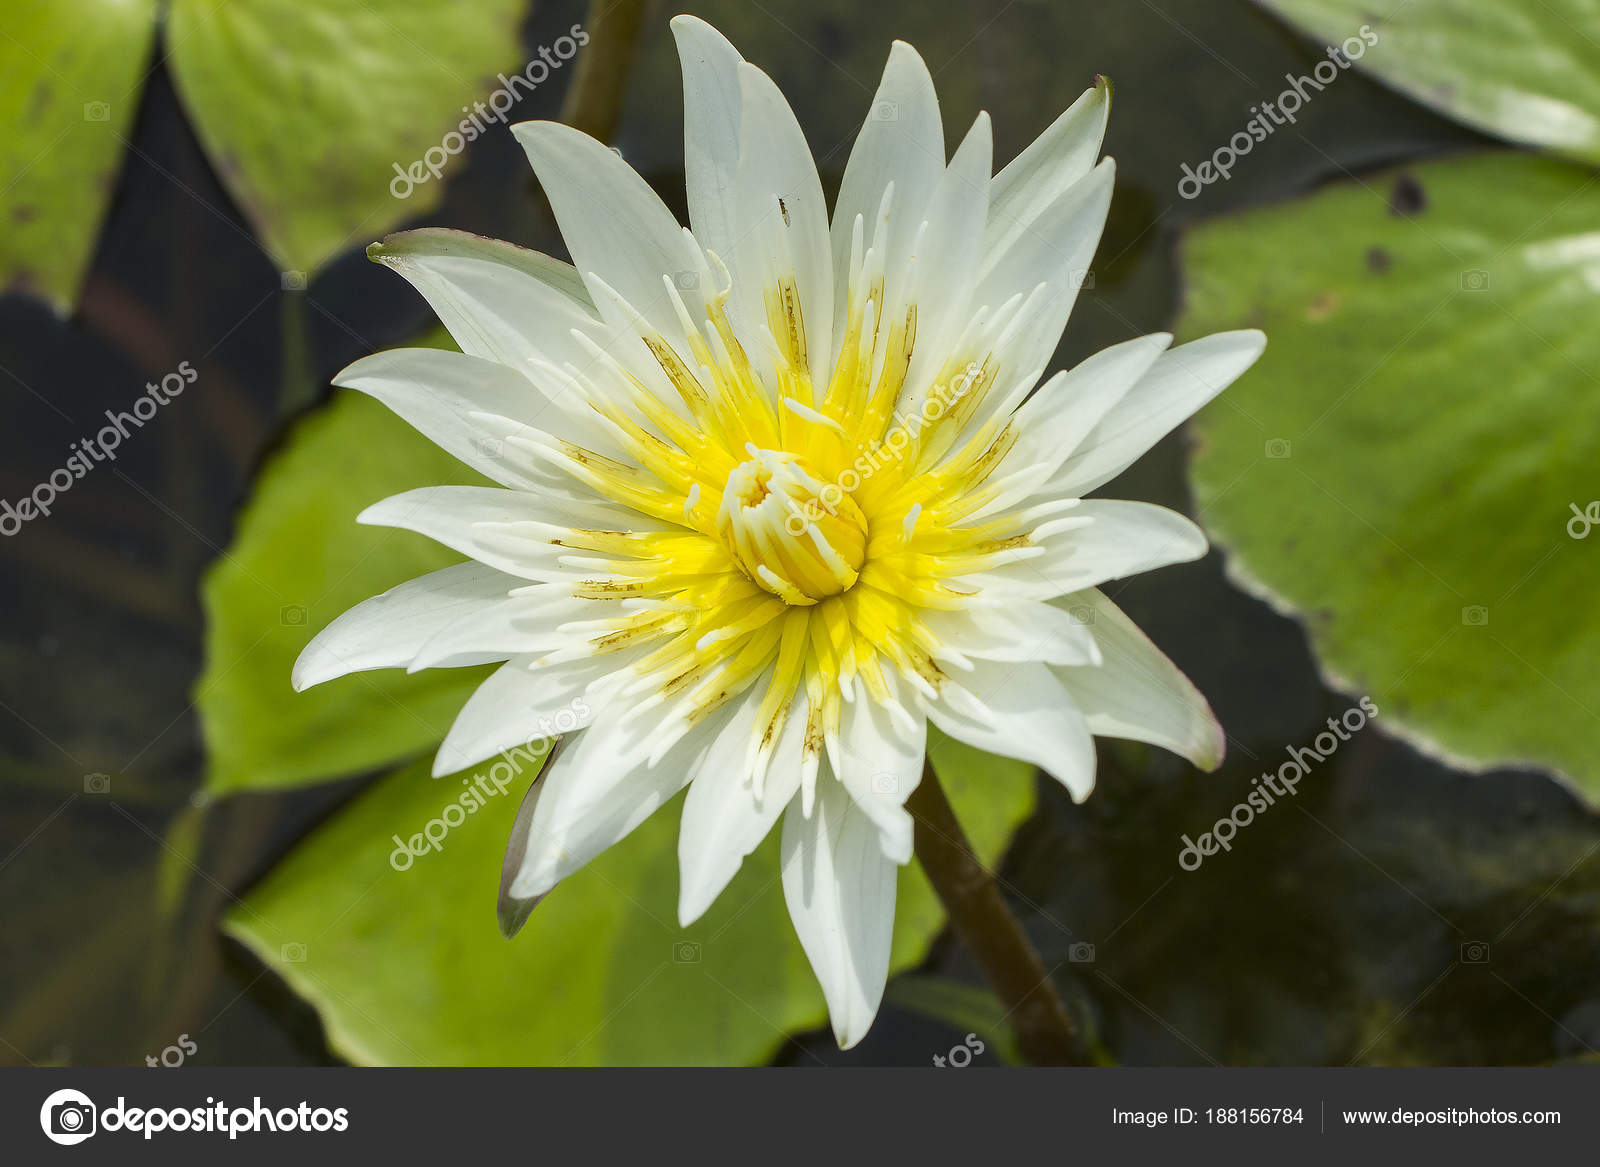 Elegant White Lily Flower Lotus Water Lotus Flower Water Lily